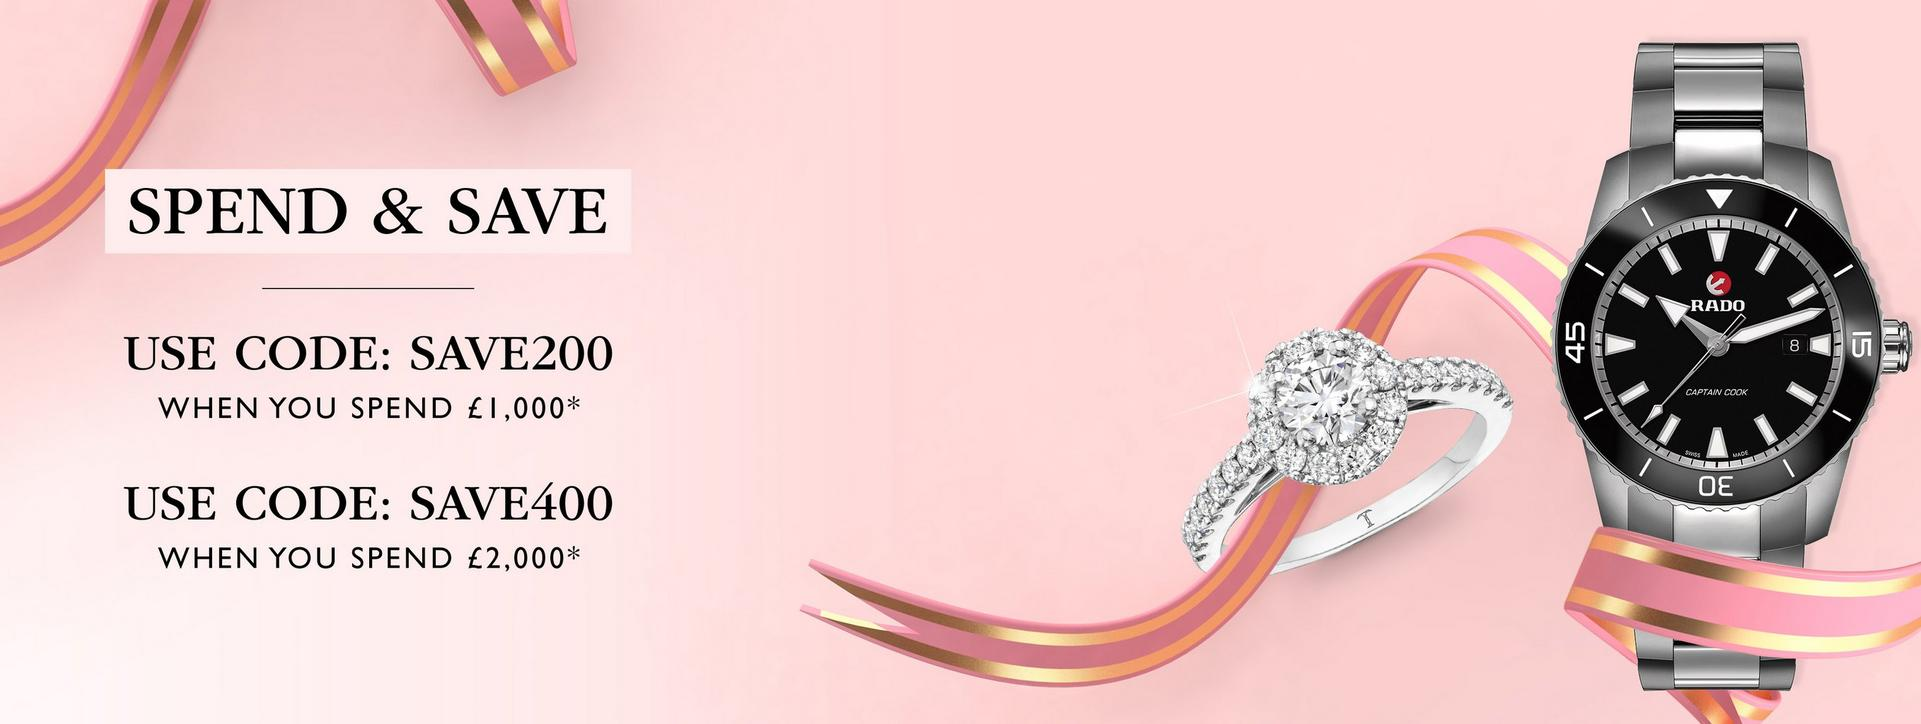 Save up to £400 on watches and diamonds at Ernest Jones